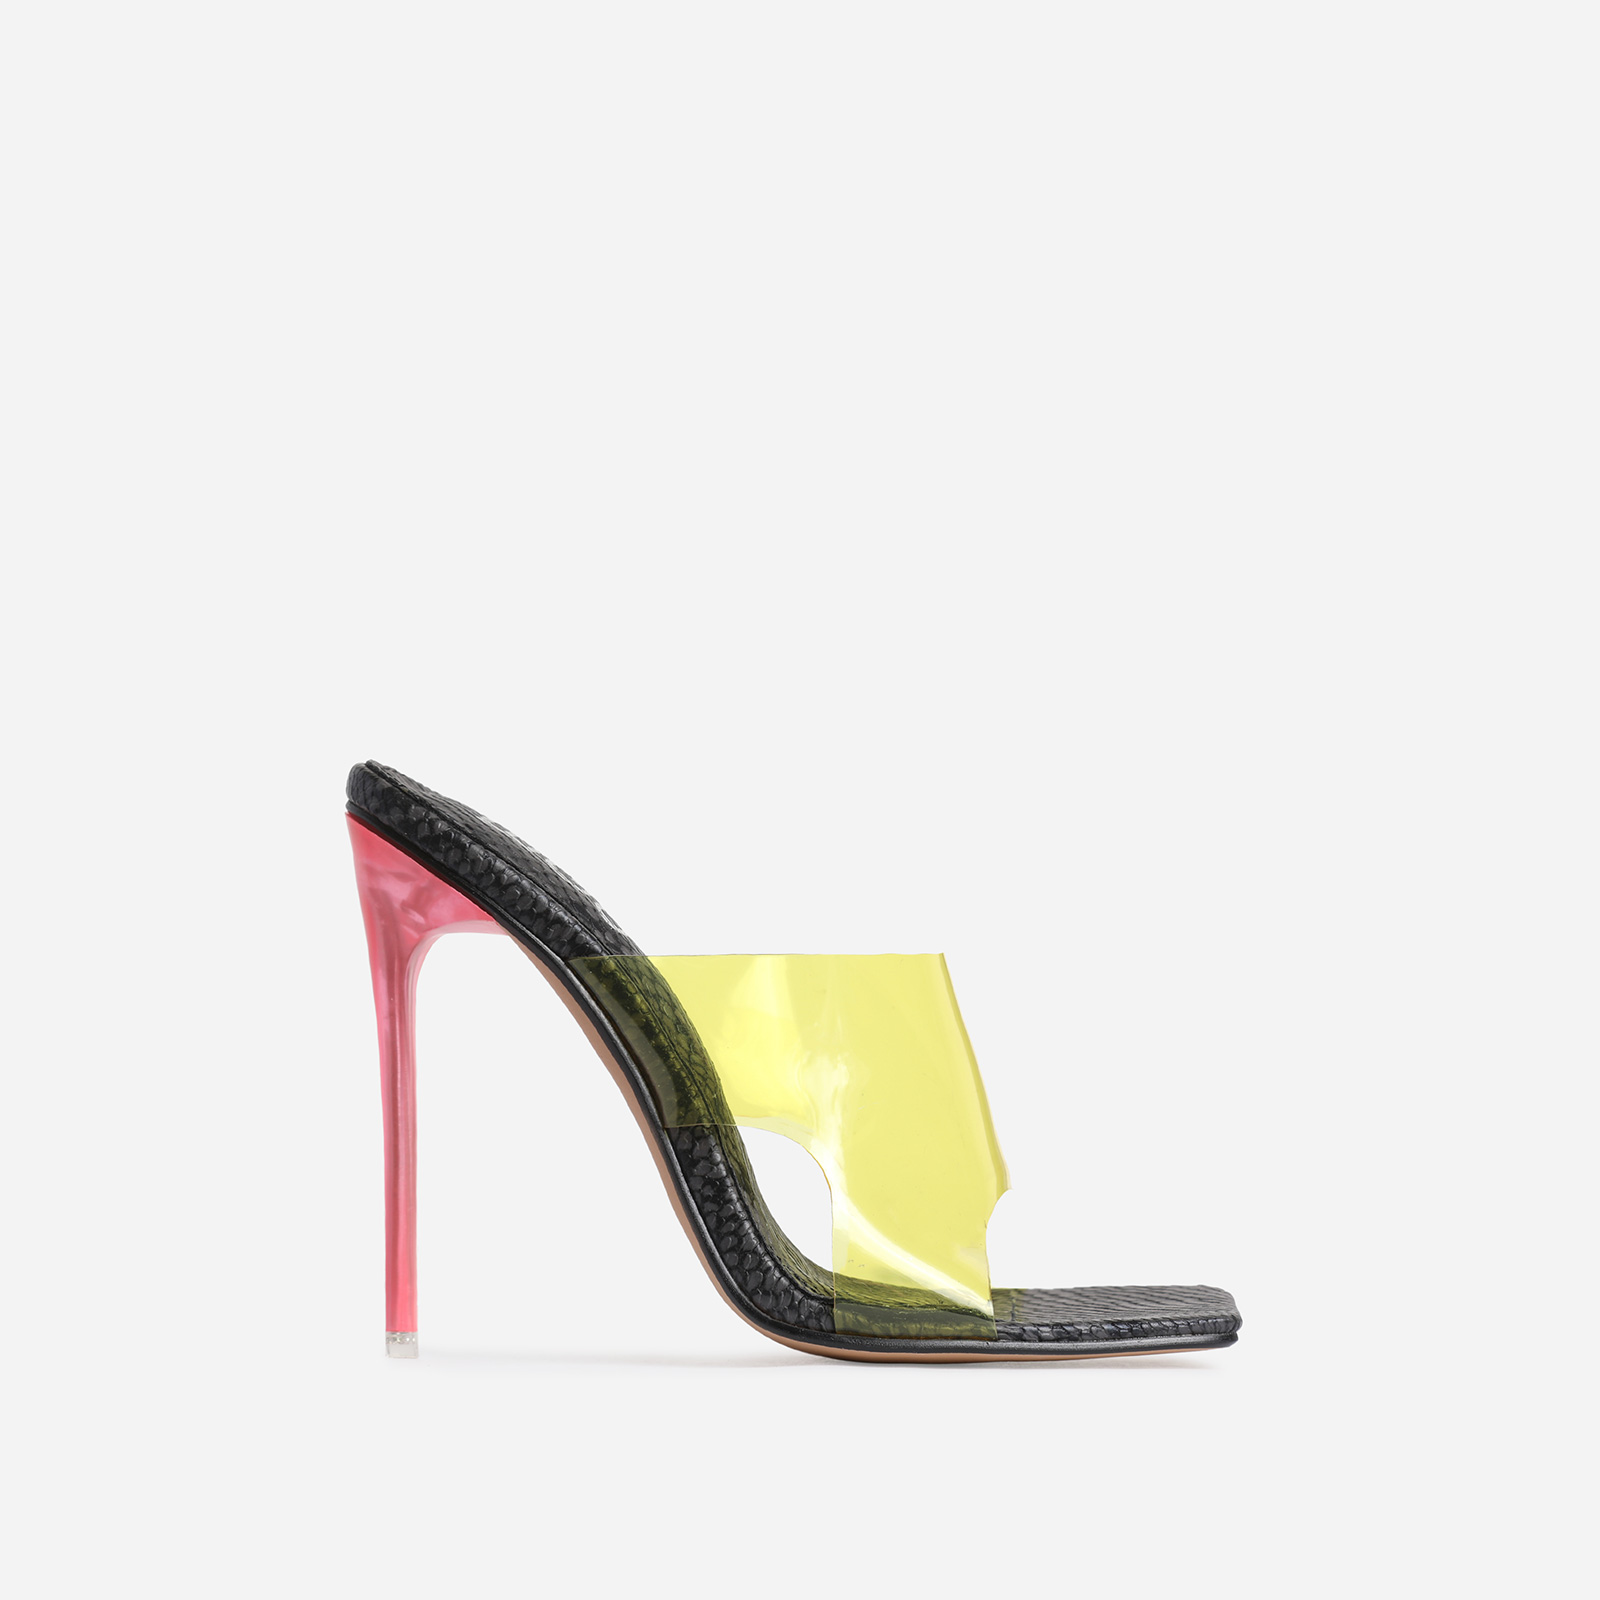 River Yellow Clear Perspex Square Peep Toe Heel Mule In Black Snake Print Faux Leather